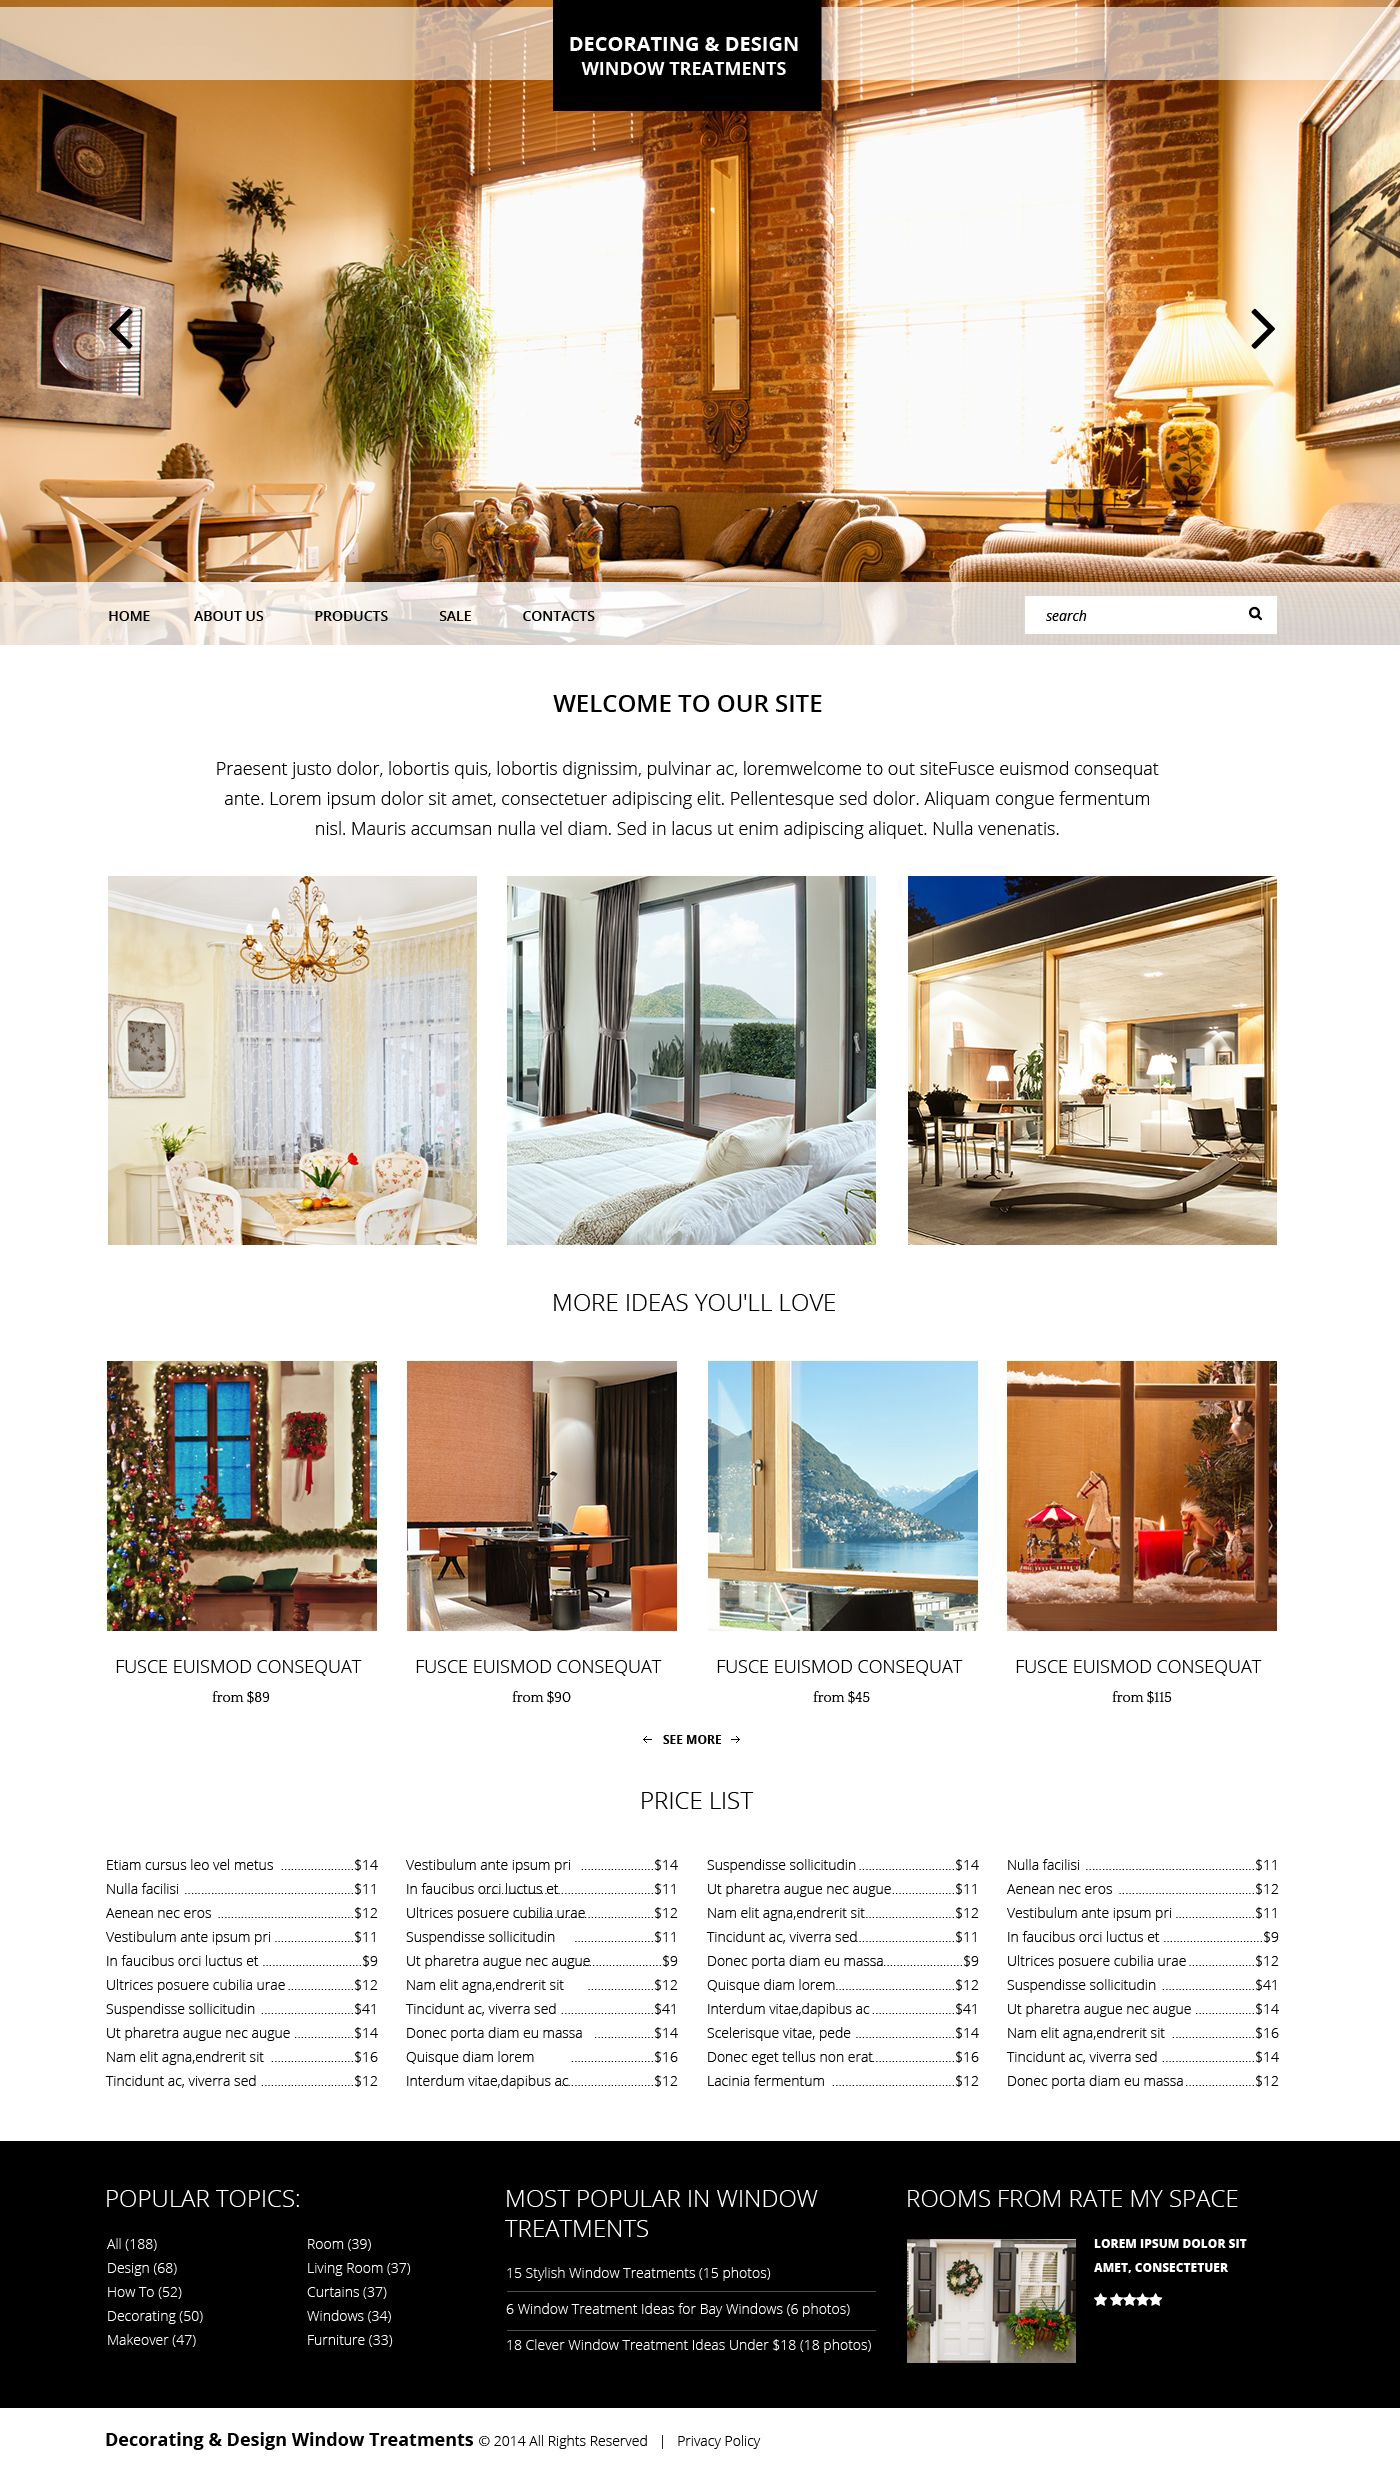 Paginas web de decoracion finest affordable el taller de for Paginas web decoracion